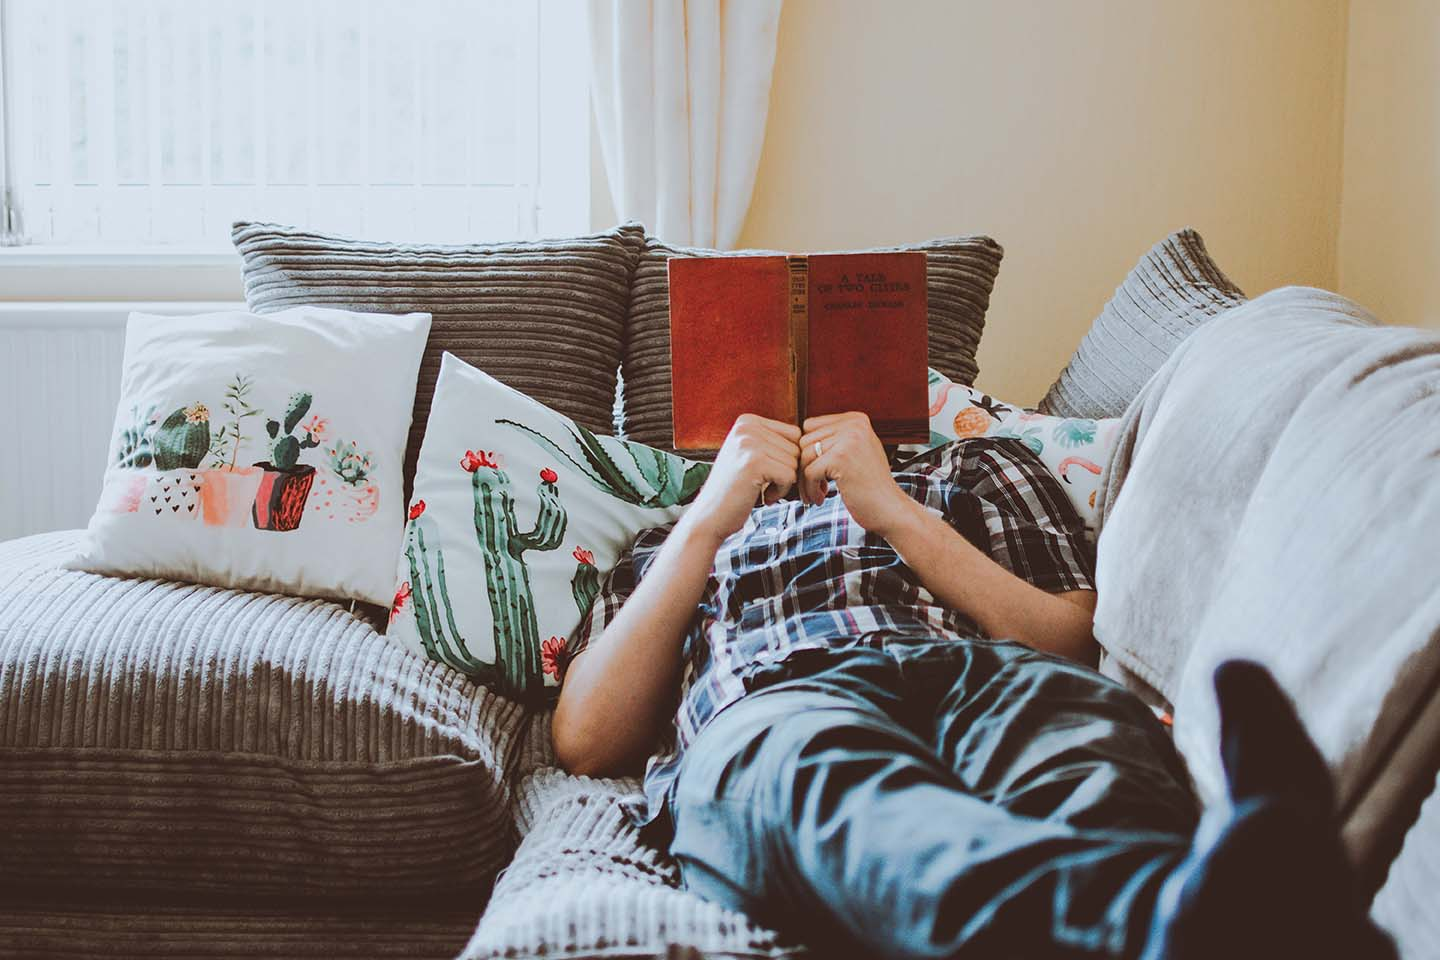 Man lying on a couch reading a book which obscures his face